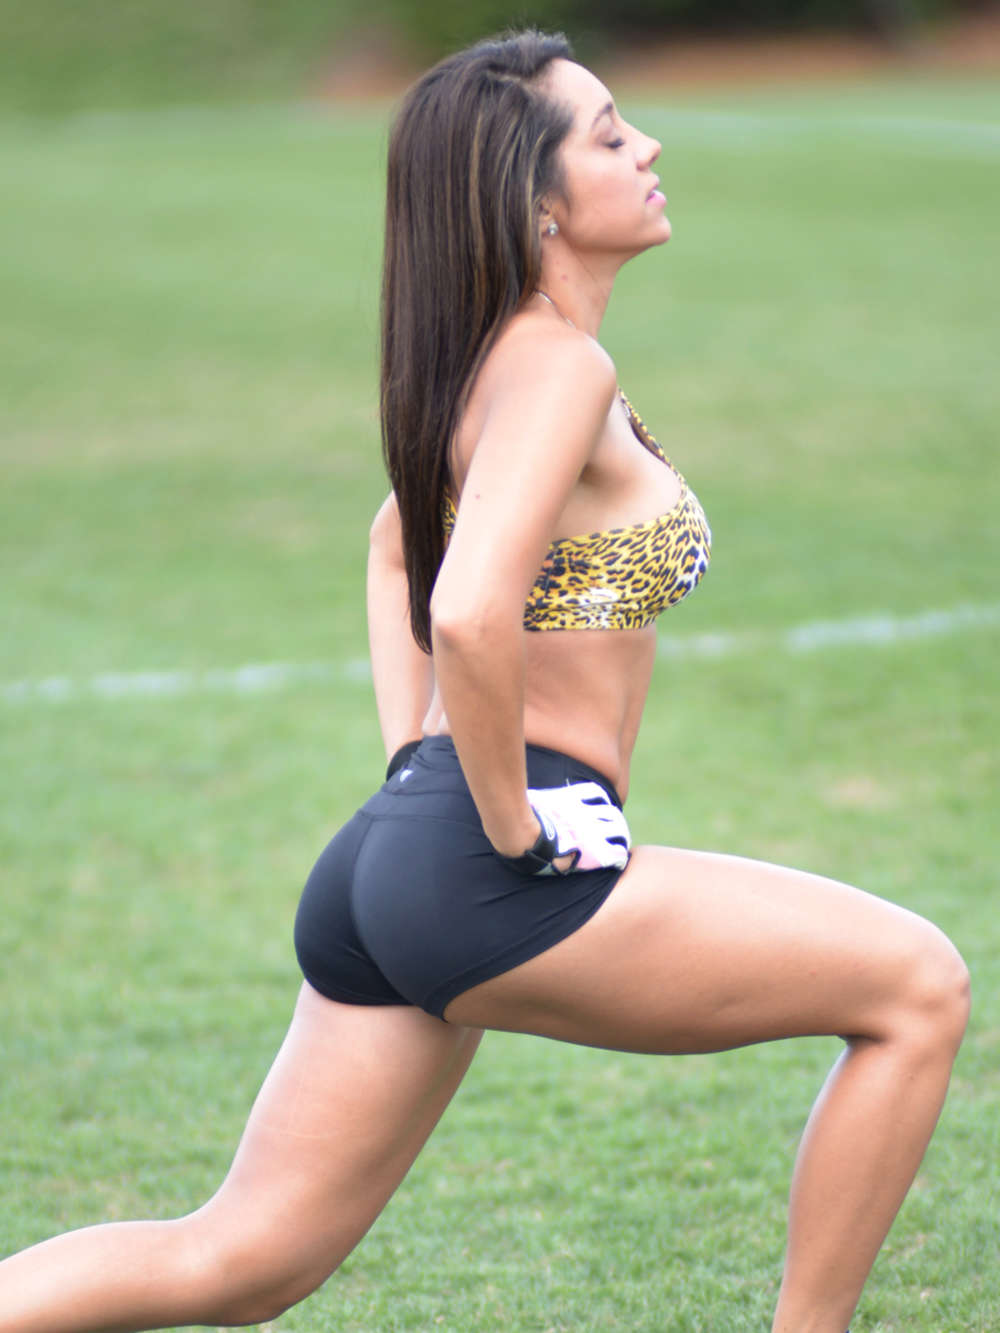 Andrea-Calle-Working-Out-Miami-Park-Kanoni-2